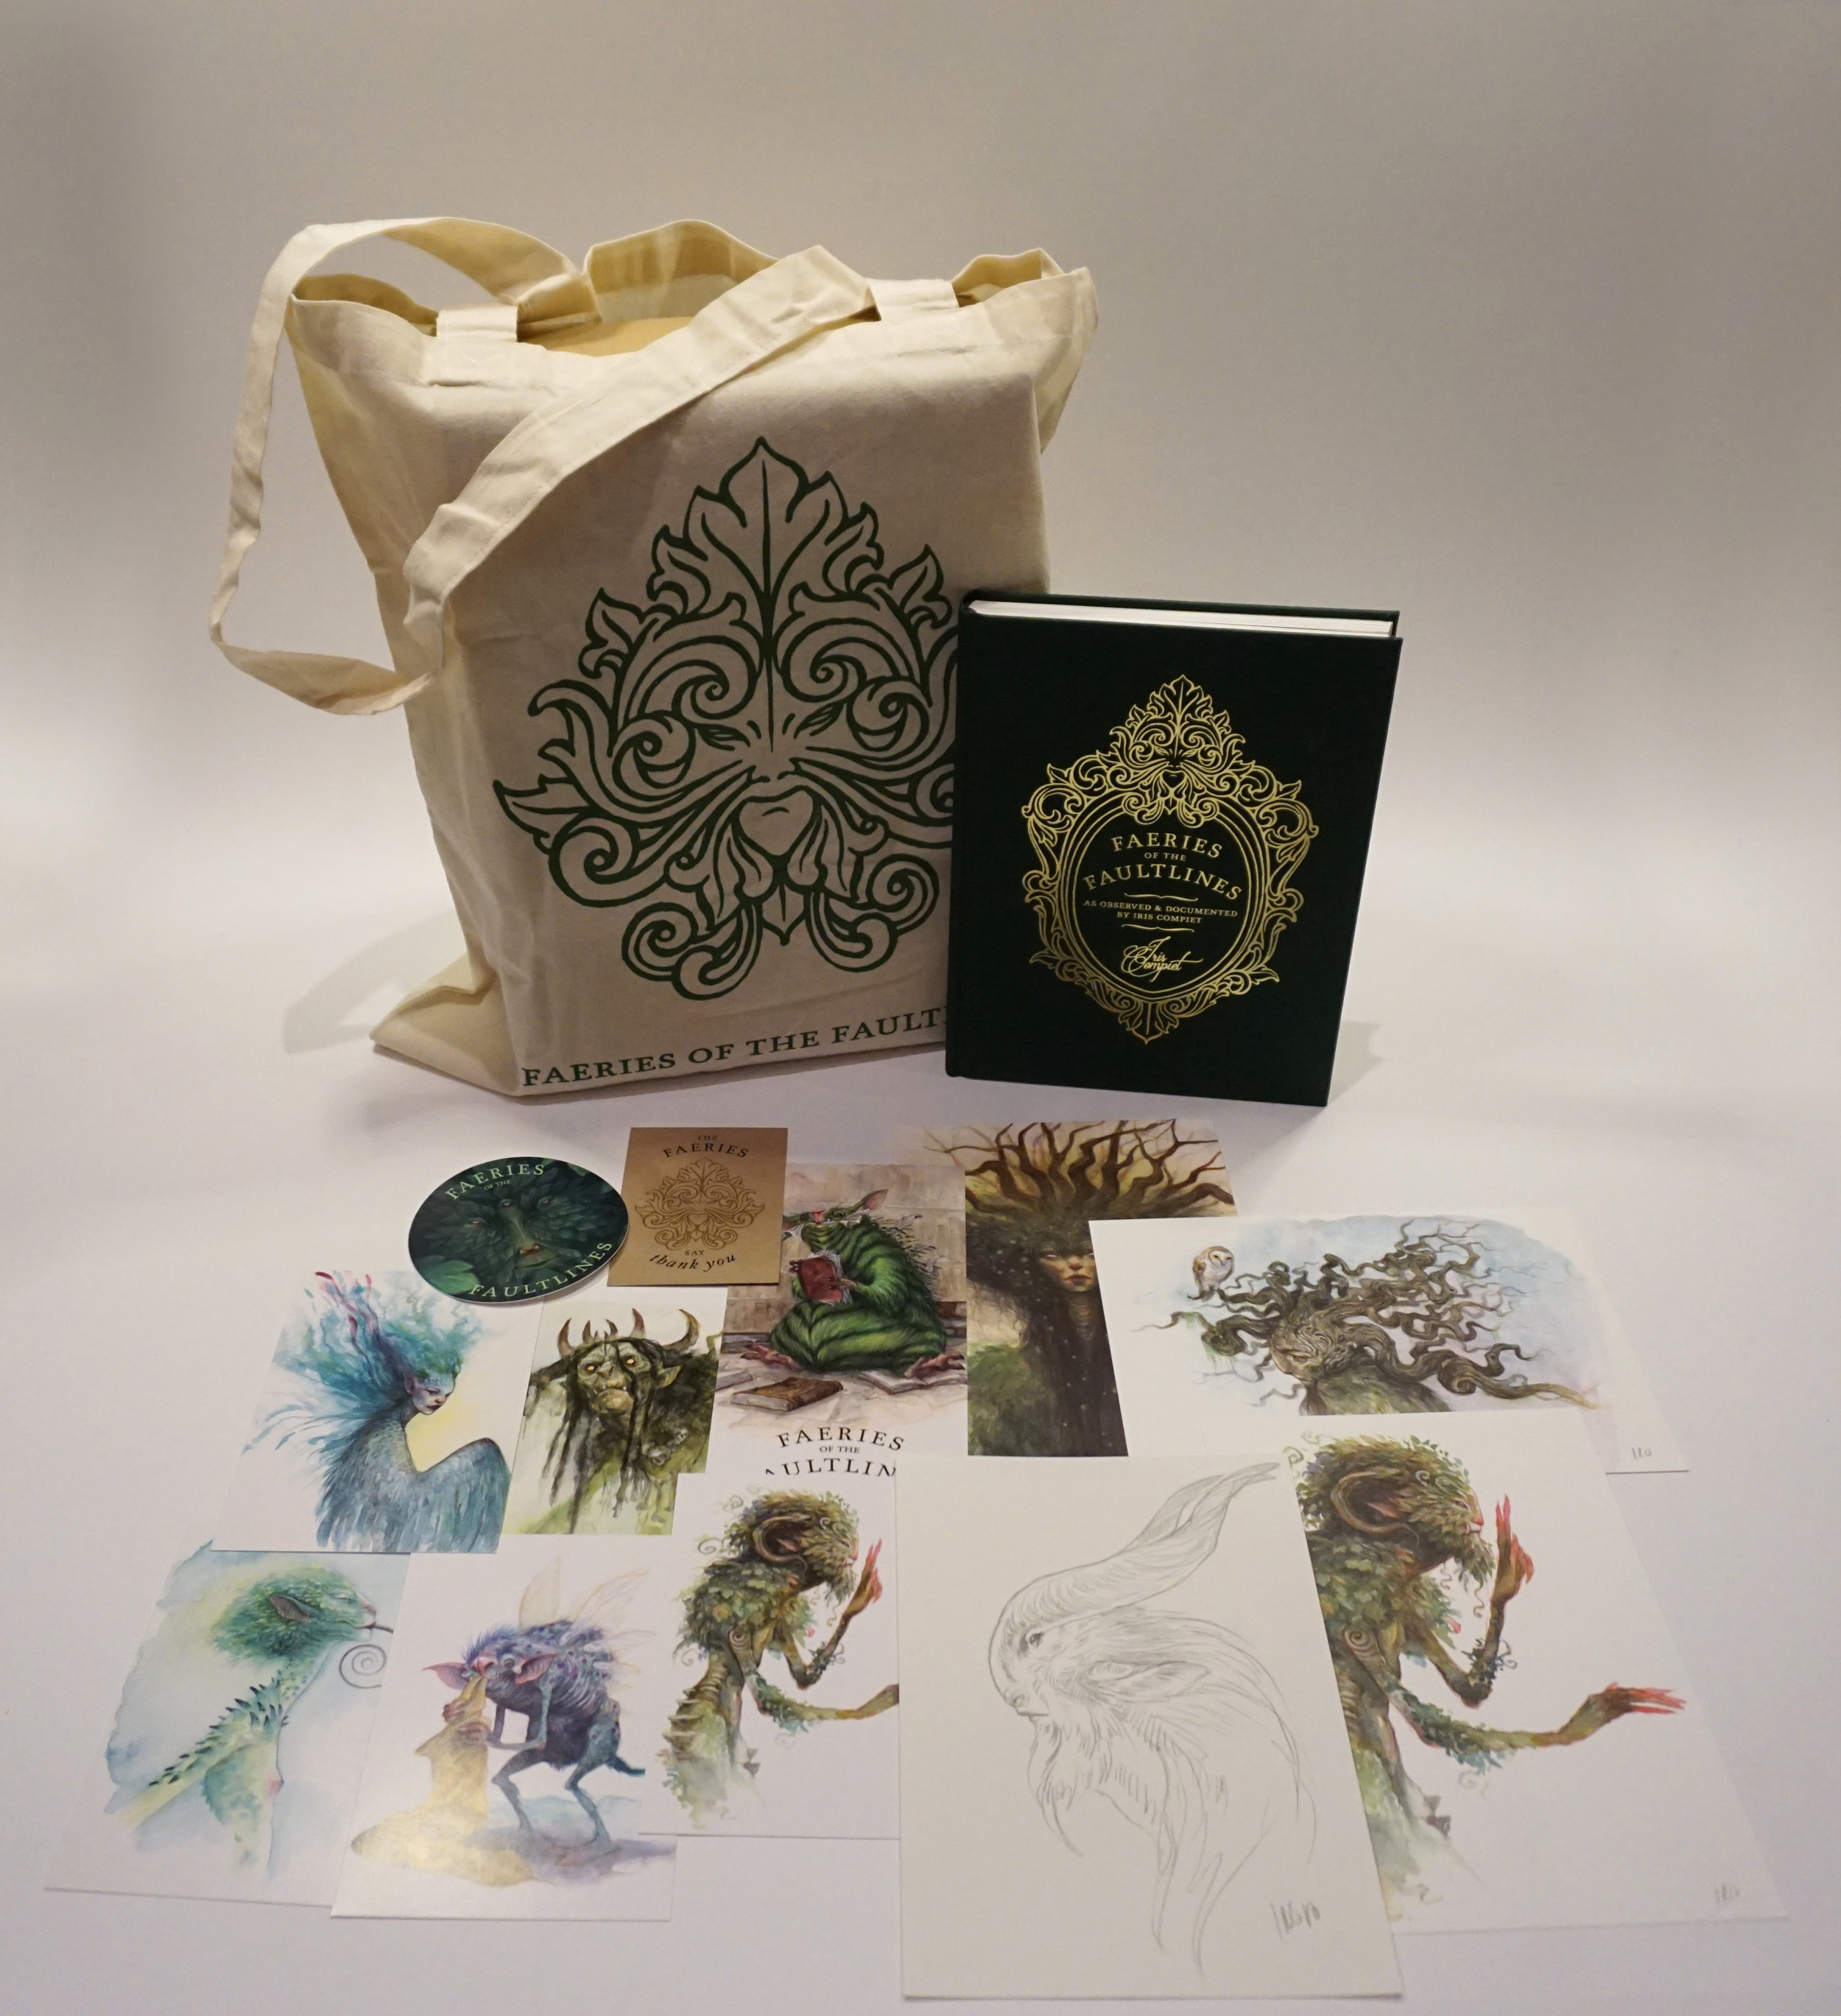 Fairies galore - This was my tier during the Kickstarter campaign, which included many goodies as you can see. Prints, postcards, stickers, an enamel pin, and an original sketch toget with the book and the bag.